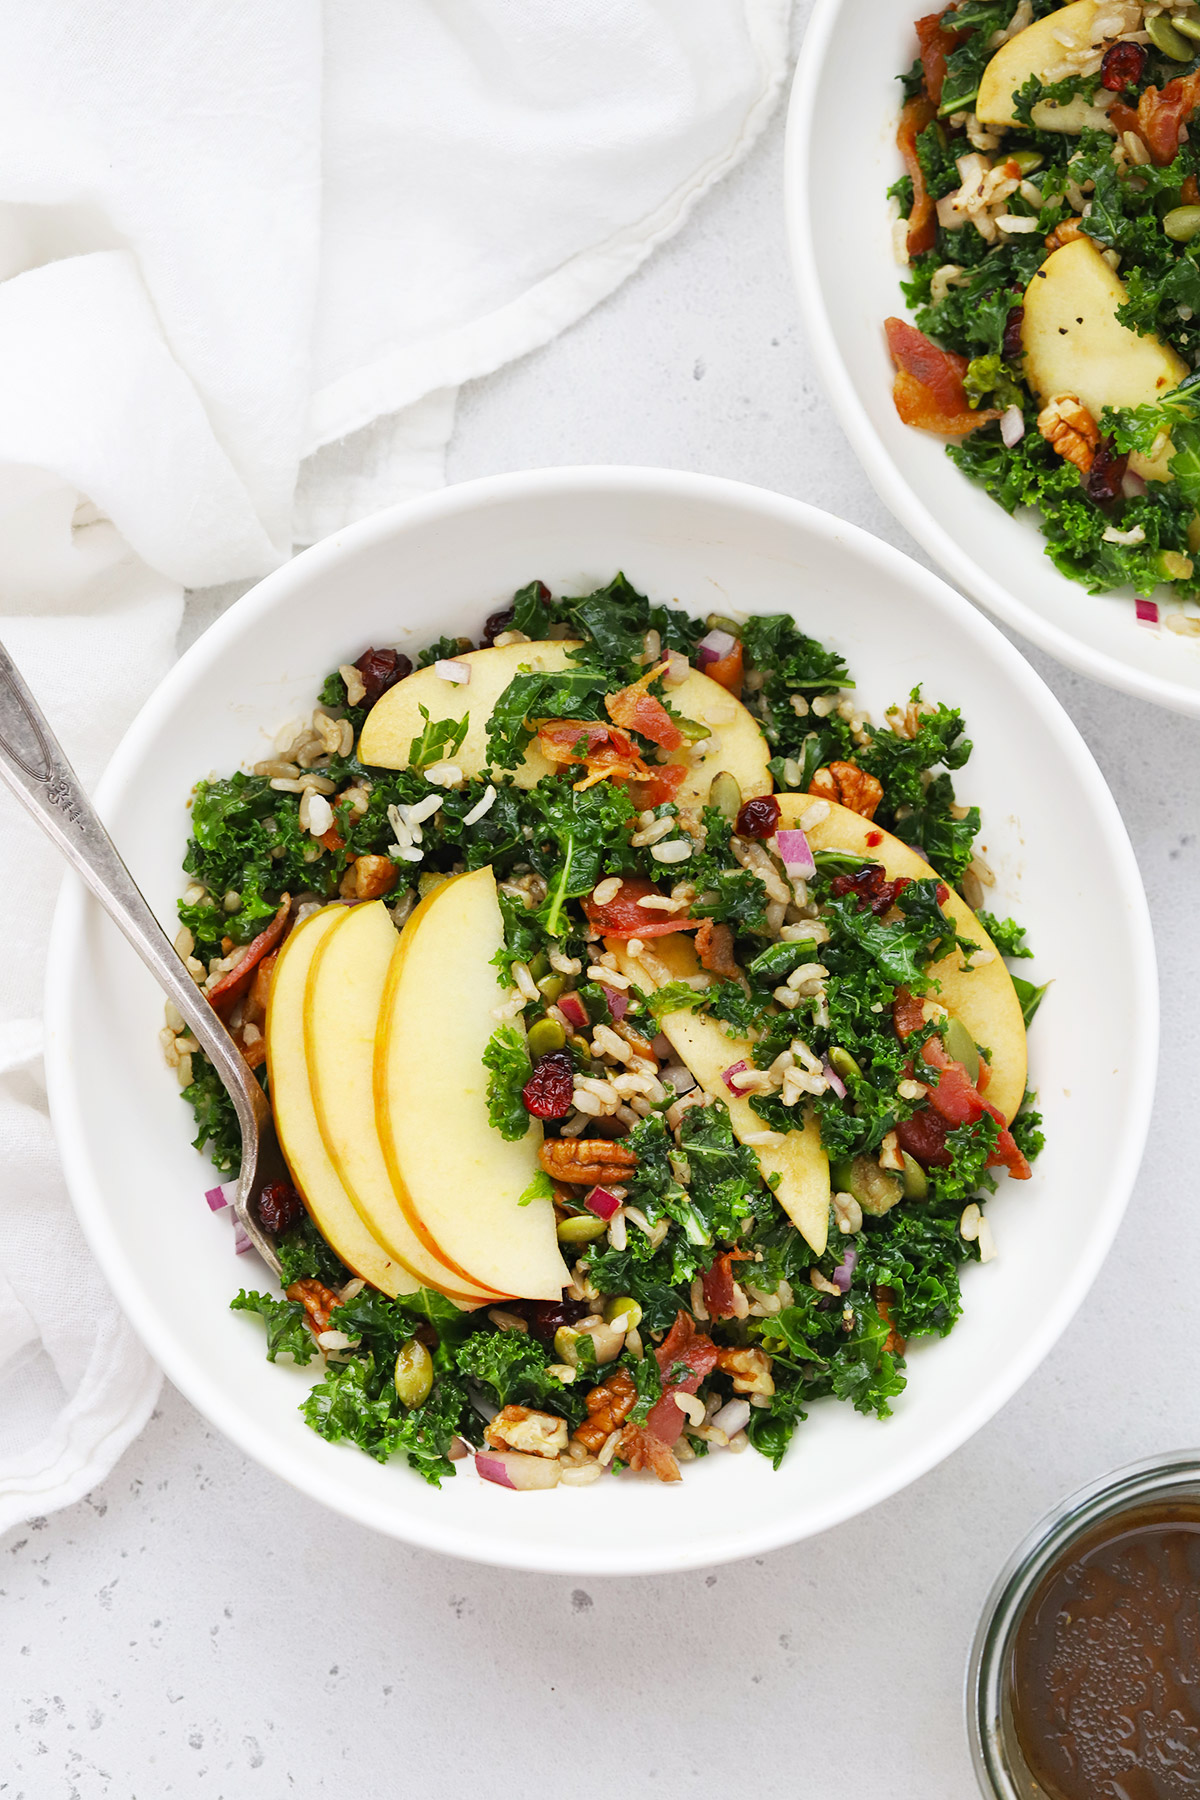 Overhead view of two bowls of Harvest Apple Kale Salad with Balsamic Dressing from One Lovely Life